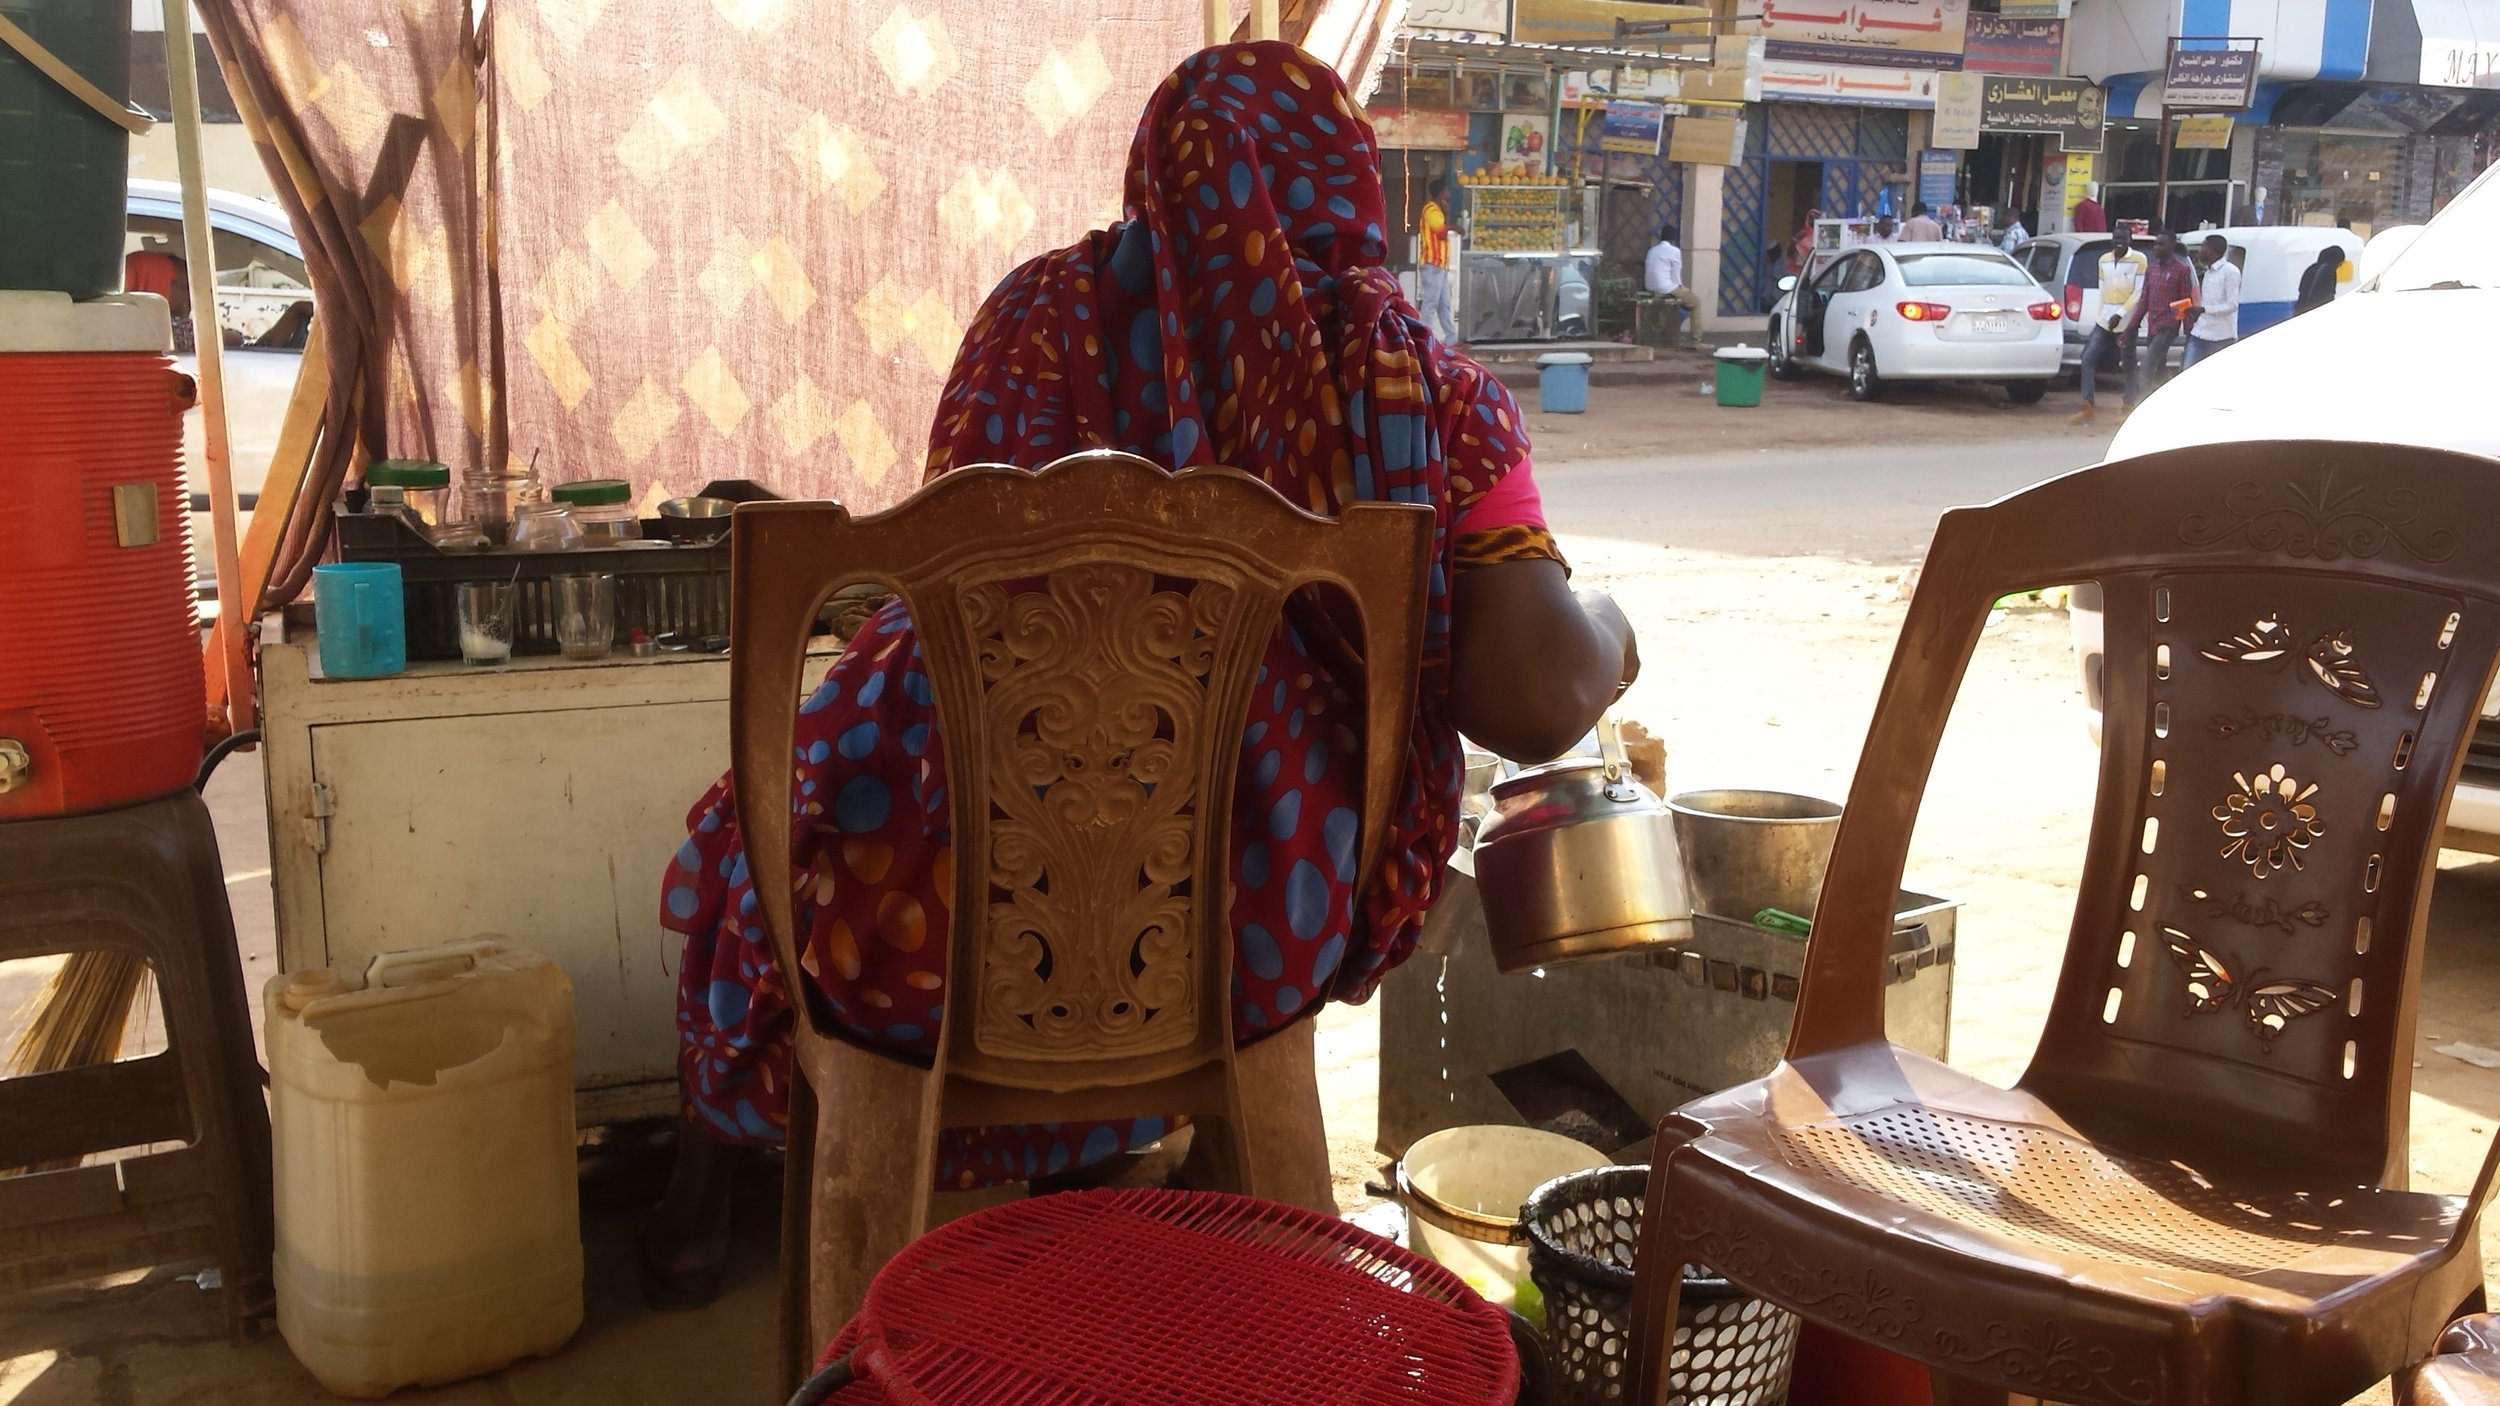 Coffee ladies! The lifeblood of all Sudan.